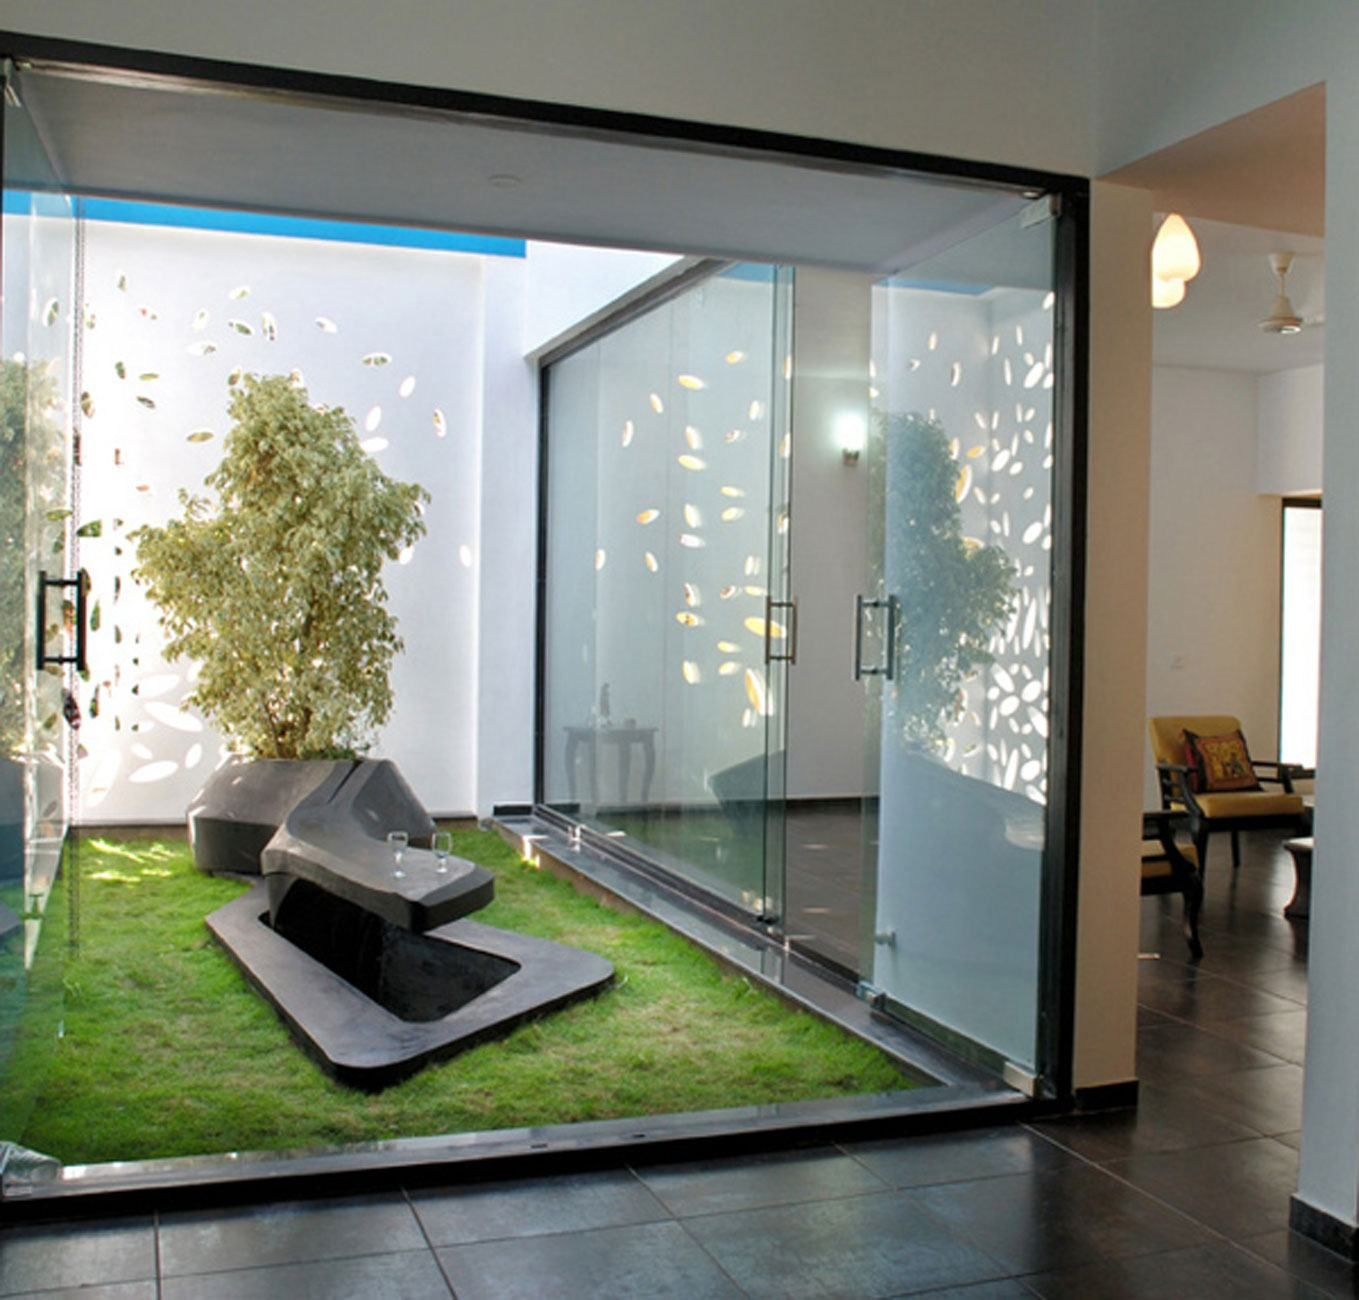 Garden with modern glazed home interior designs home for Interior courtyard designs ideas